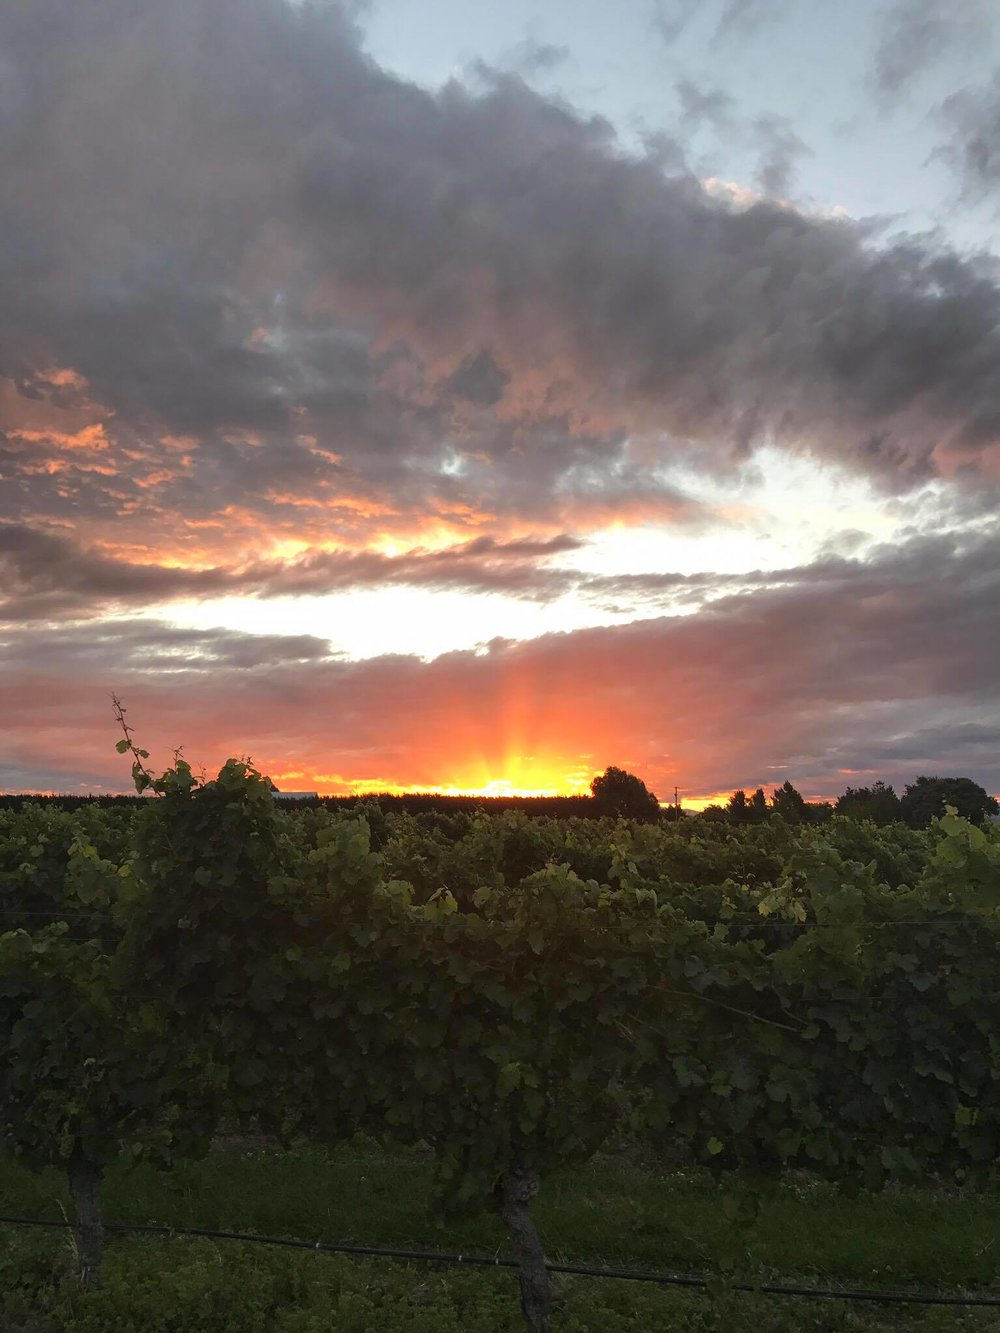 Marlborough sunset over the vines at the Allan Scott Vineyard